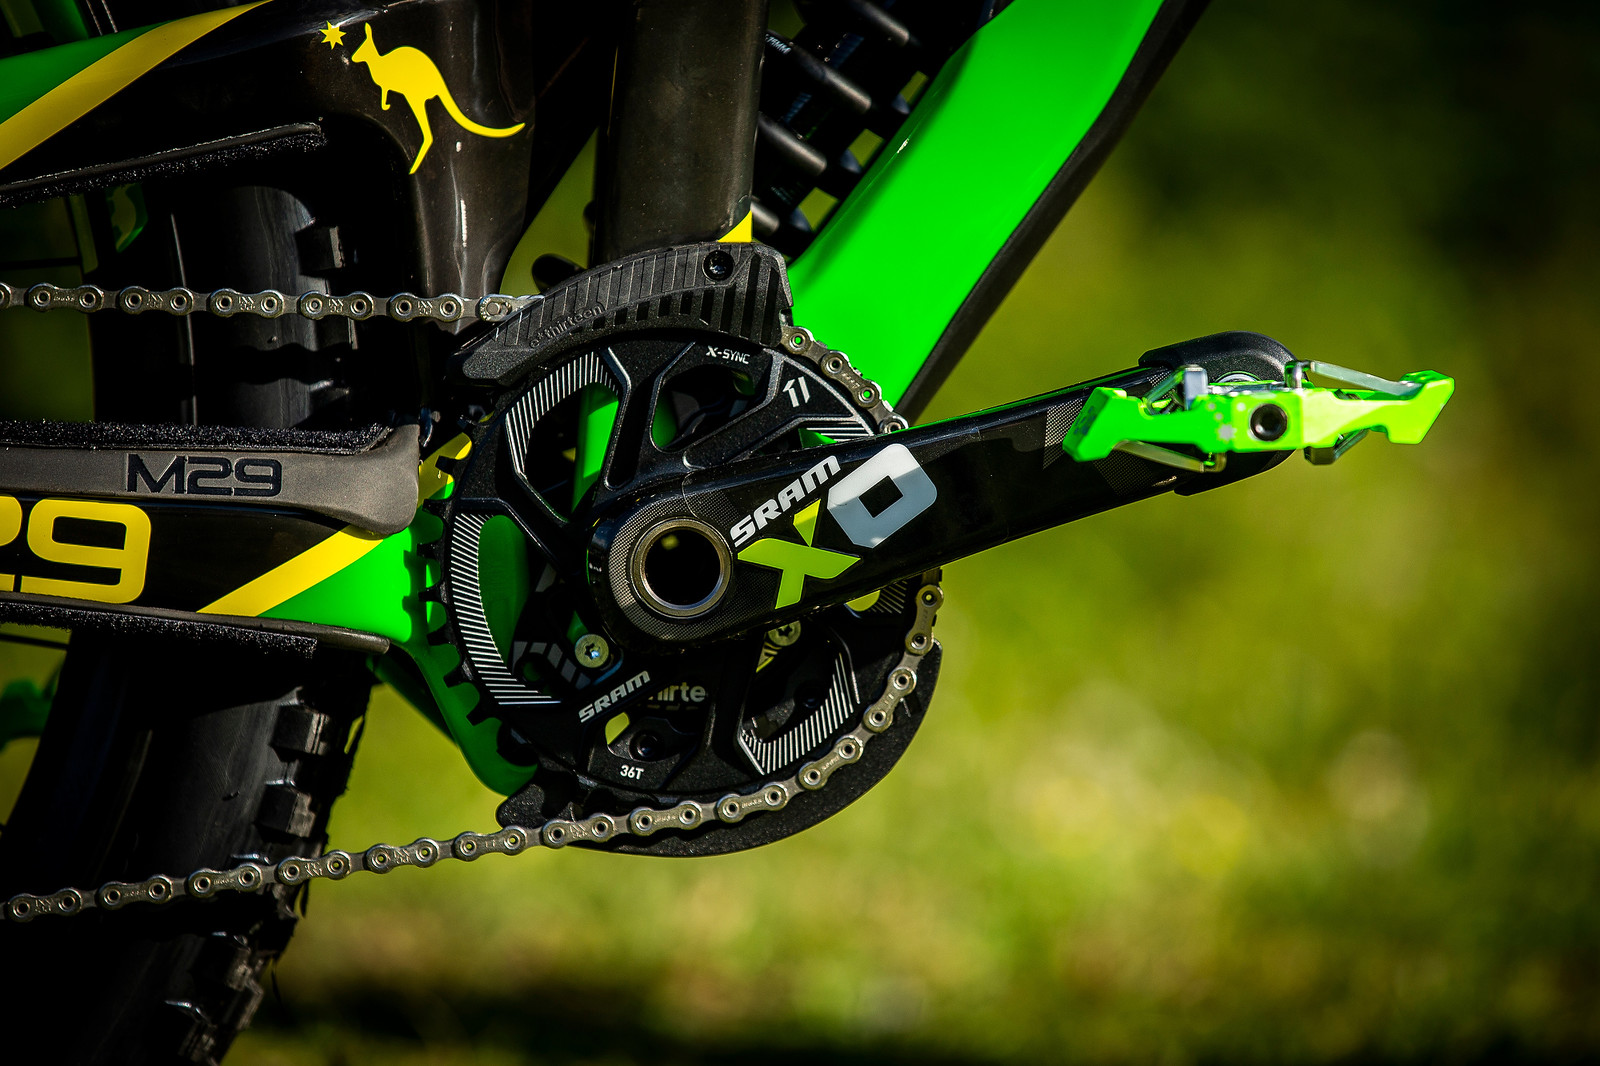 Cranky - WORLD CHAMPS BIKE - Jack Moir's Intense M29 - Mountain Biking Pictures - Vital MTB